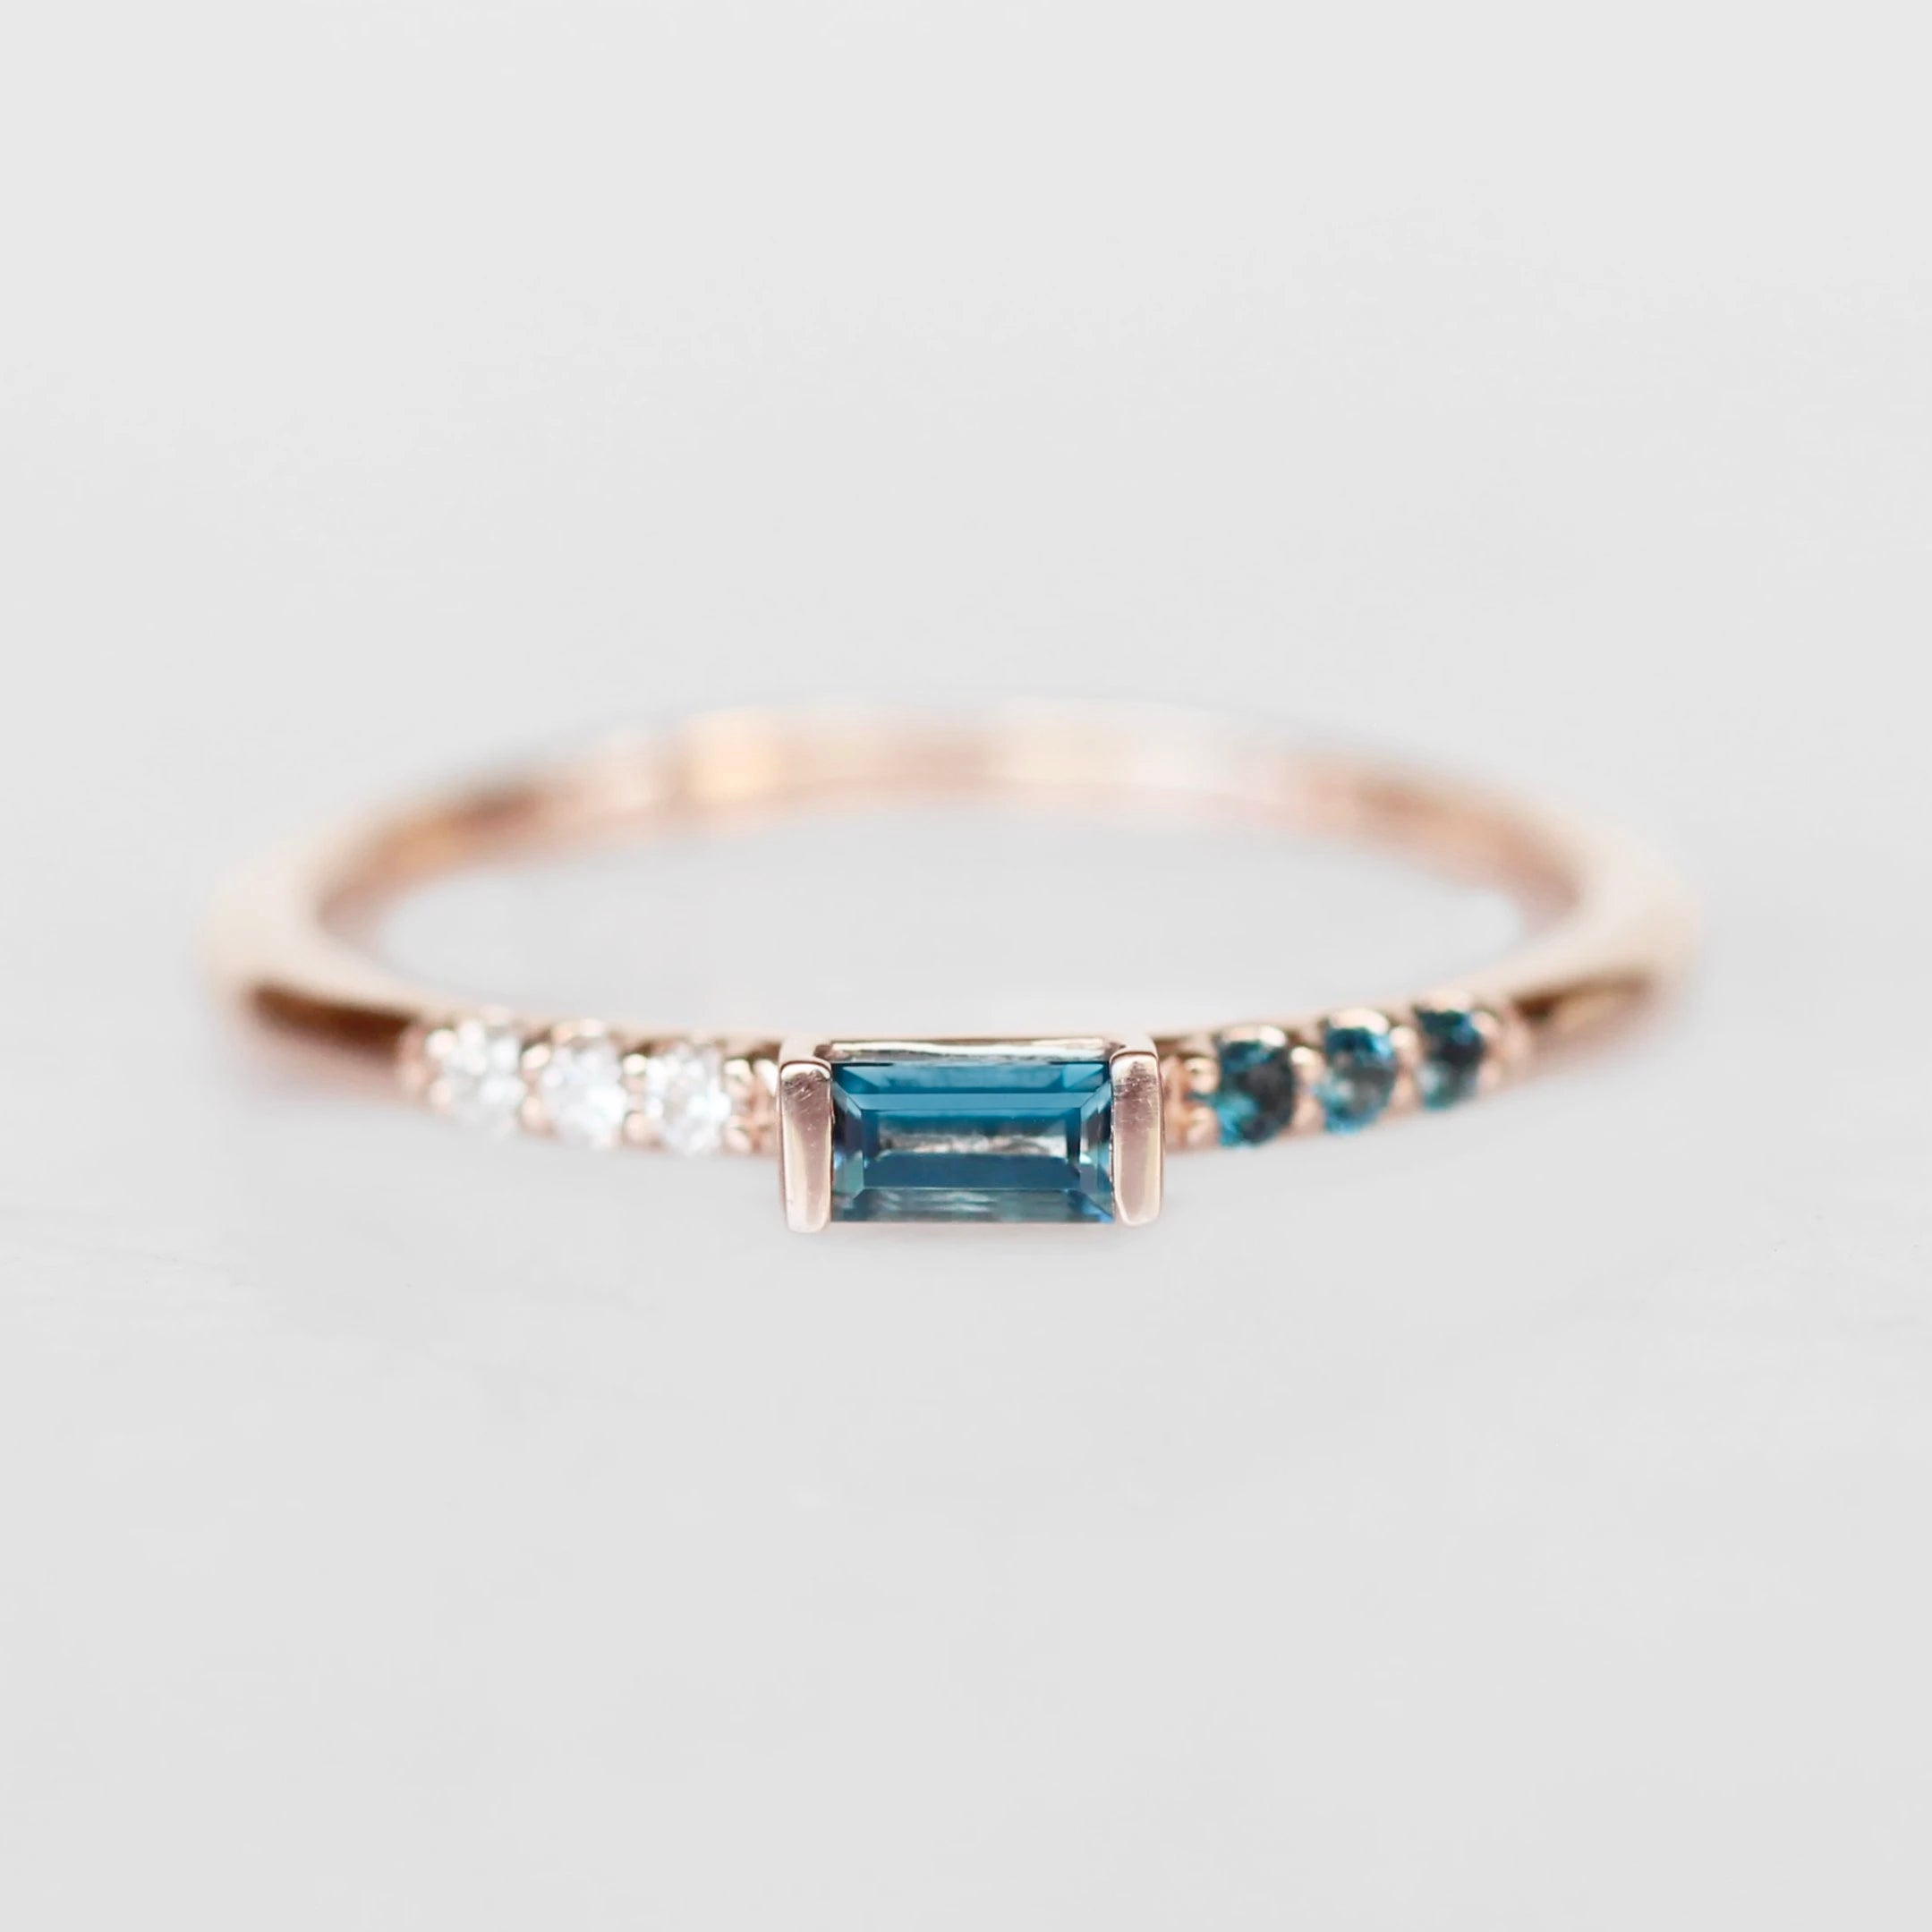 Summer Stacking Ring with London Blue Topaz and White Diamonds in 10k Rose Gold - Ready to Size and Ship - Midwinter Co. Alternative Bridal Rings and Modern Fine Jewelry